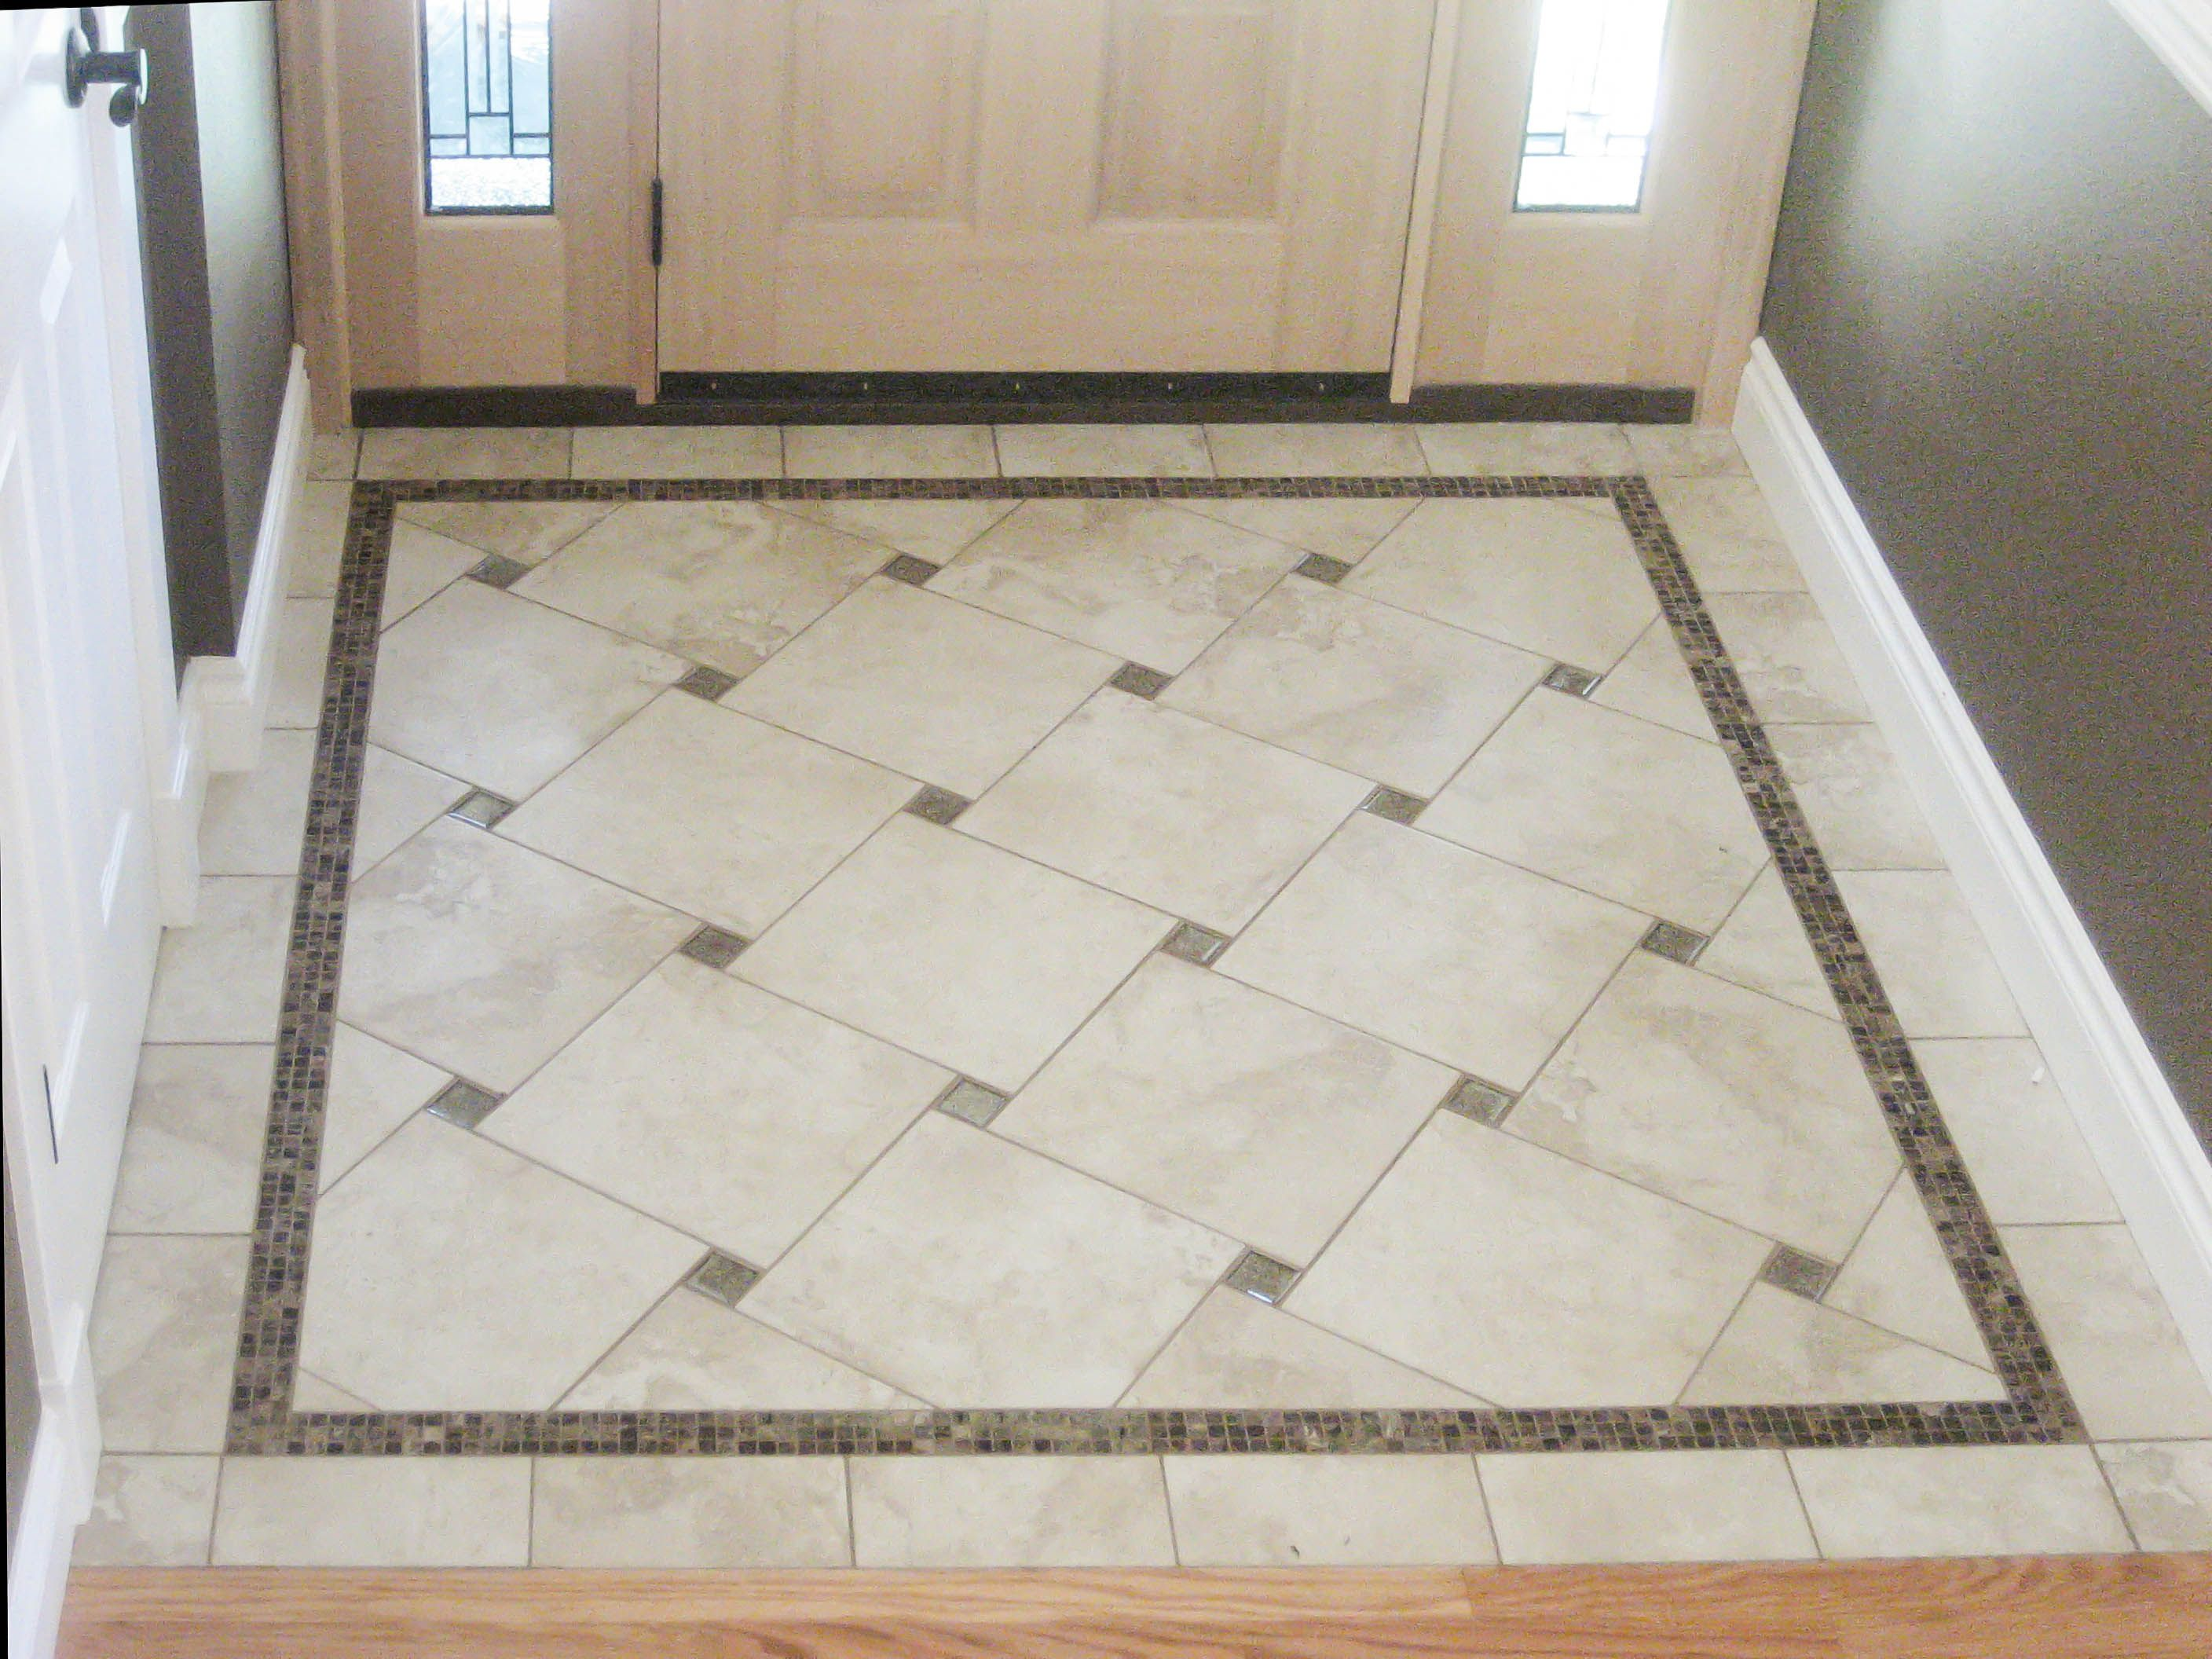 Marvelous Entry Floor Tile Ideas | Entry Floor Photos Gallery   Seattle Tile  Contractor | IRC Tile Servic